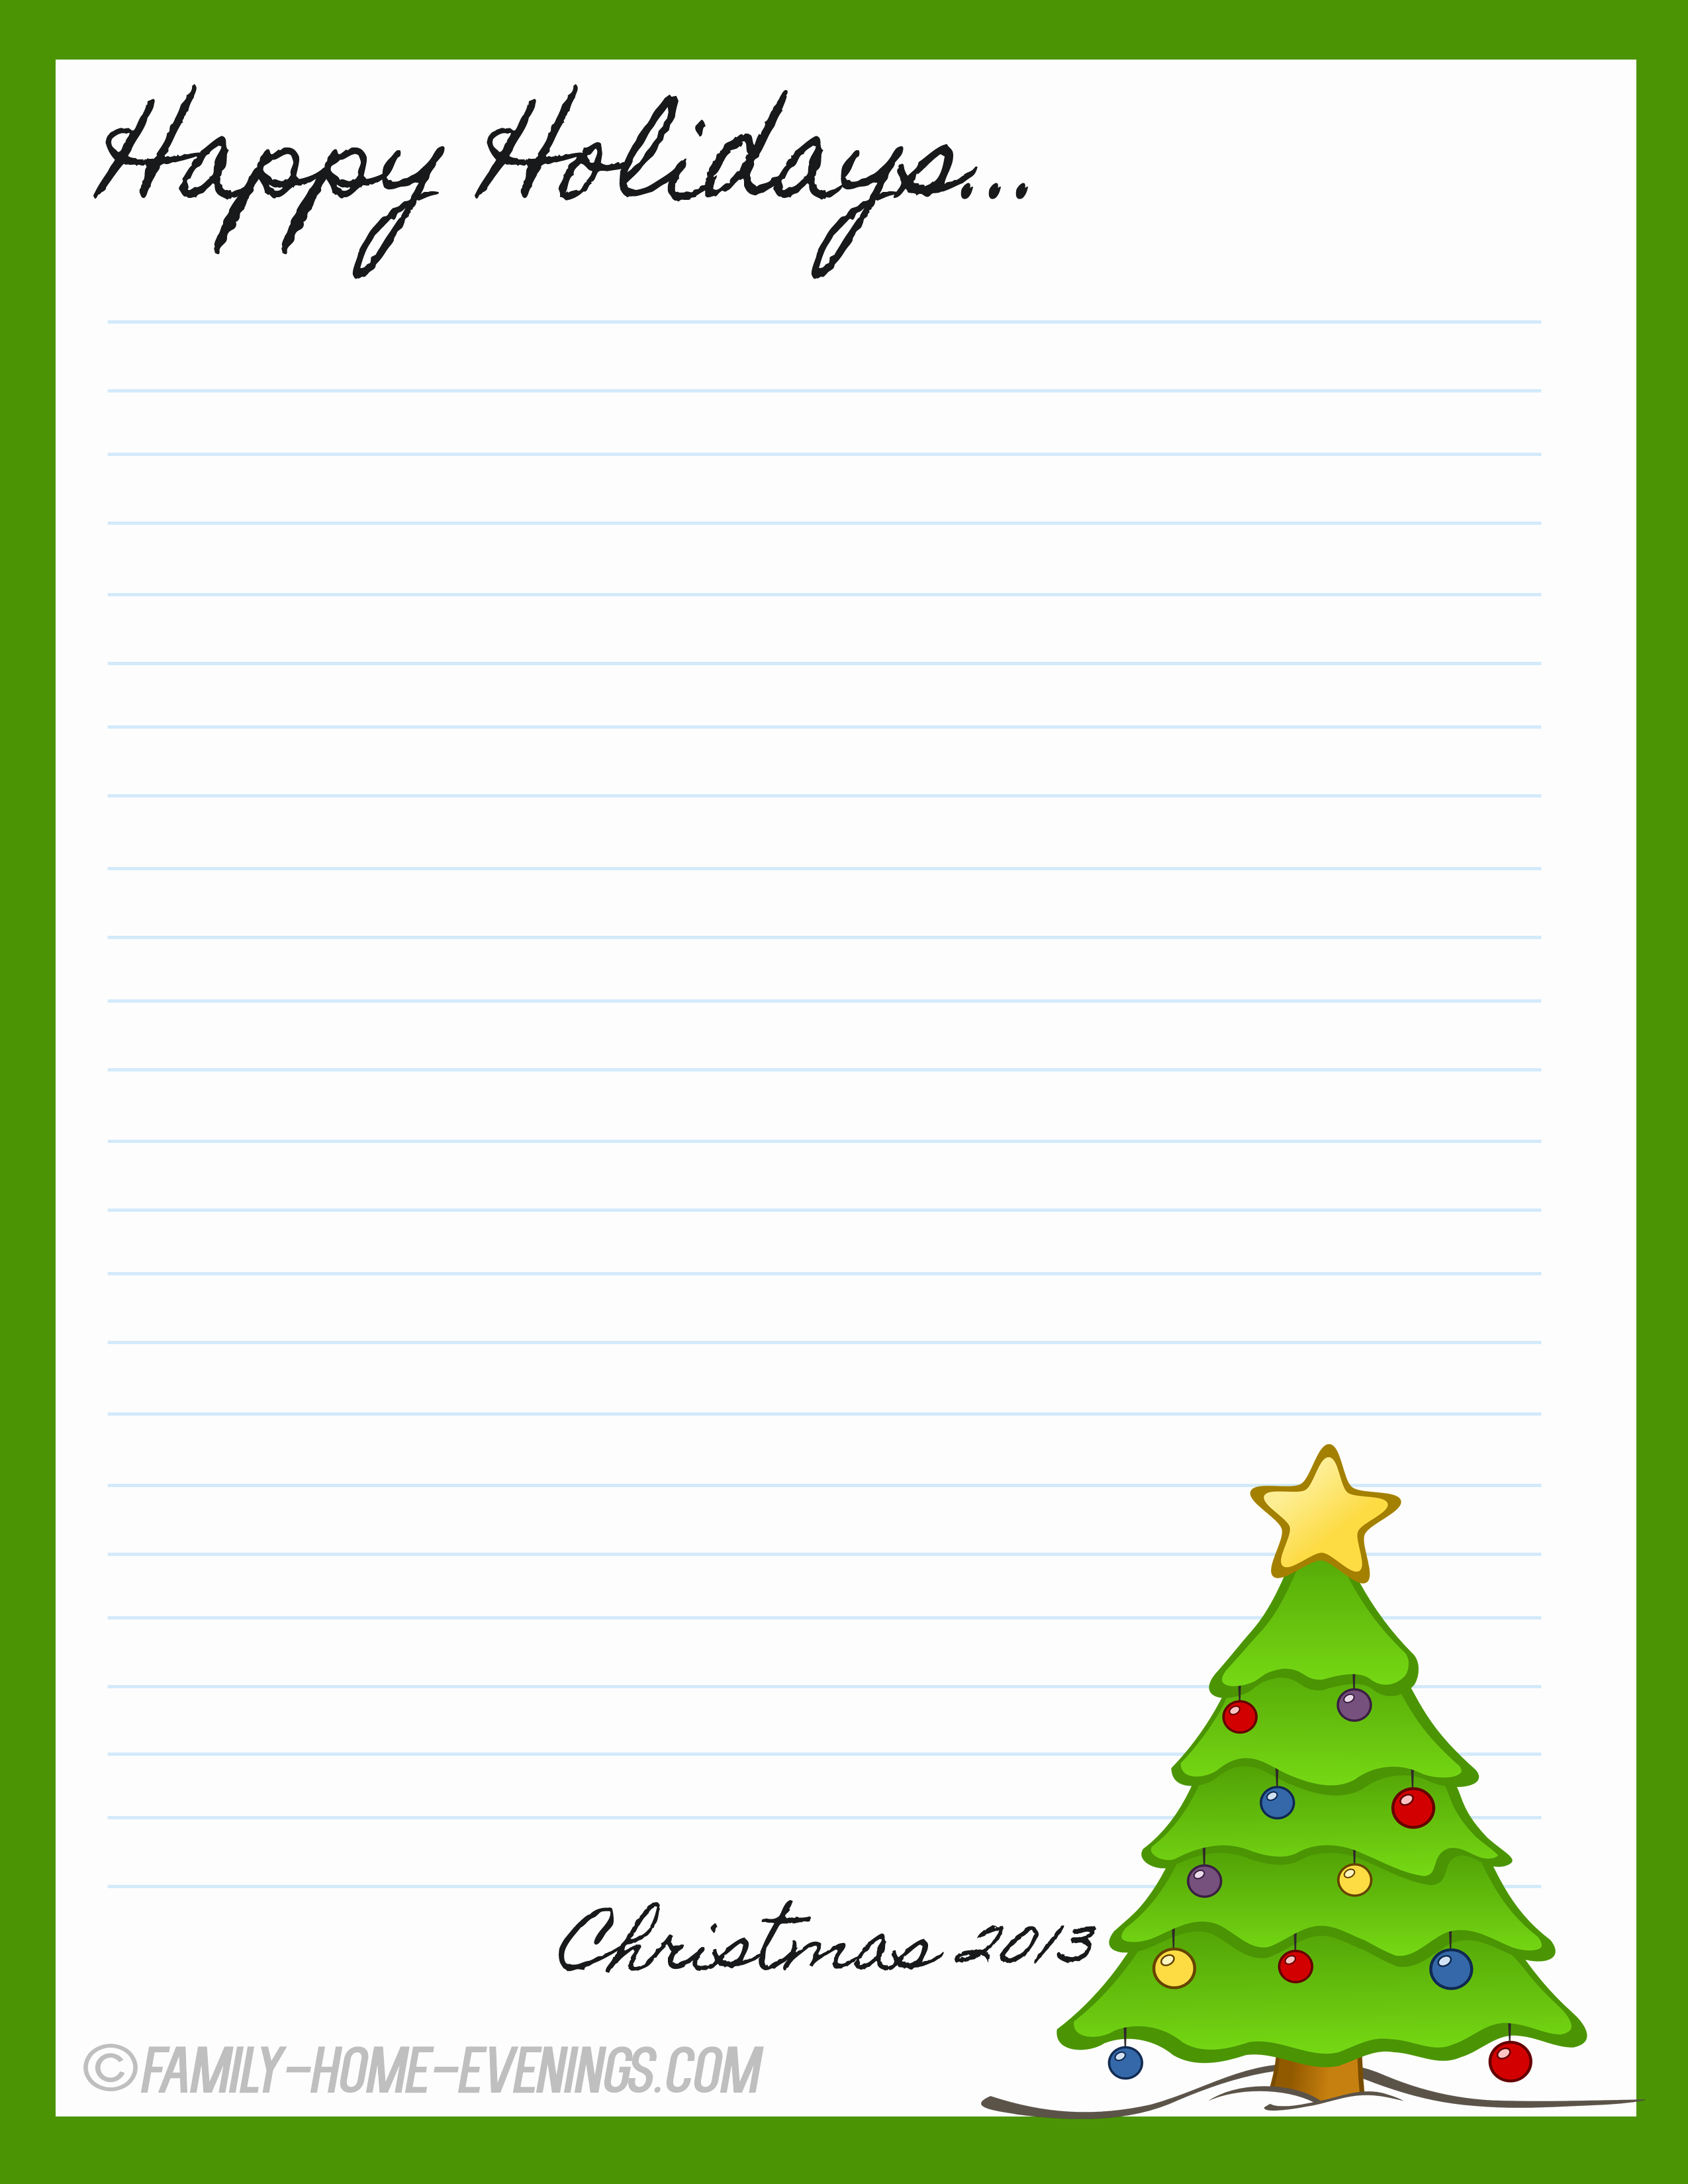 Free Christmas Borders for Letters Inspirational Downloadable Page Borders for Microsoft Word